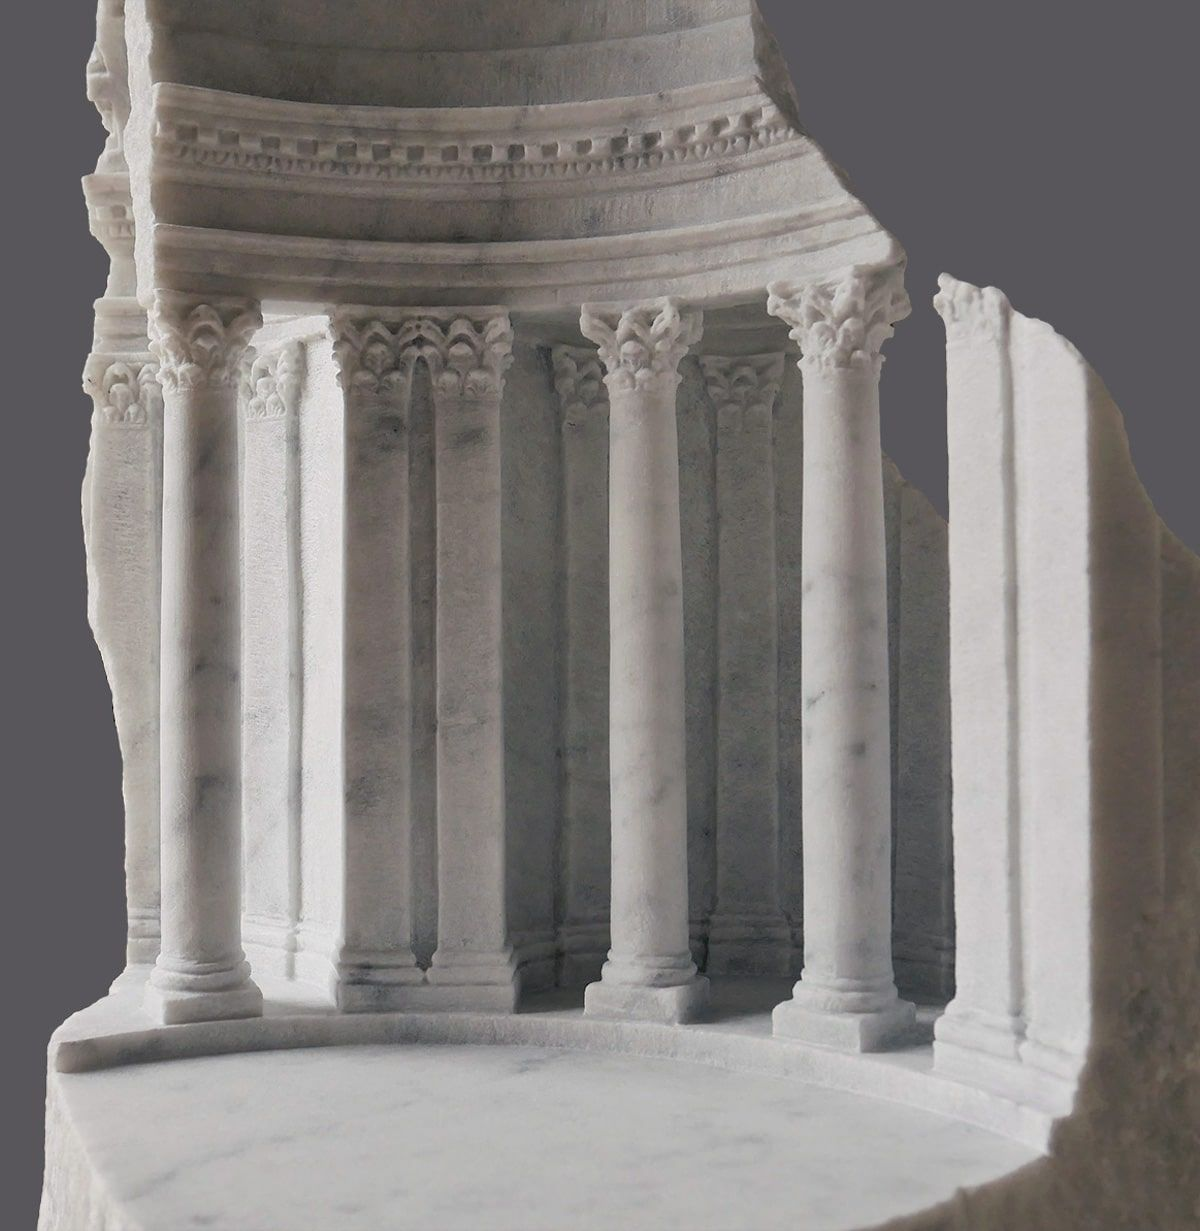 Amazing Architectural Interiors And Detailed Objects Carved Into Raw Marble Blocks Architectural Sculpture Stone Sculpture Stone Architecture